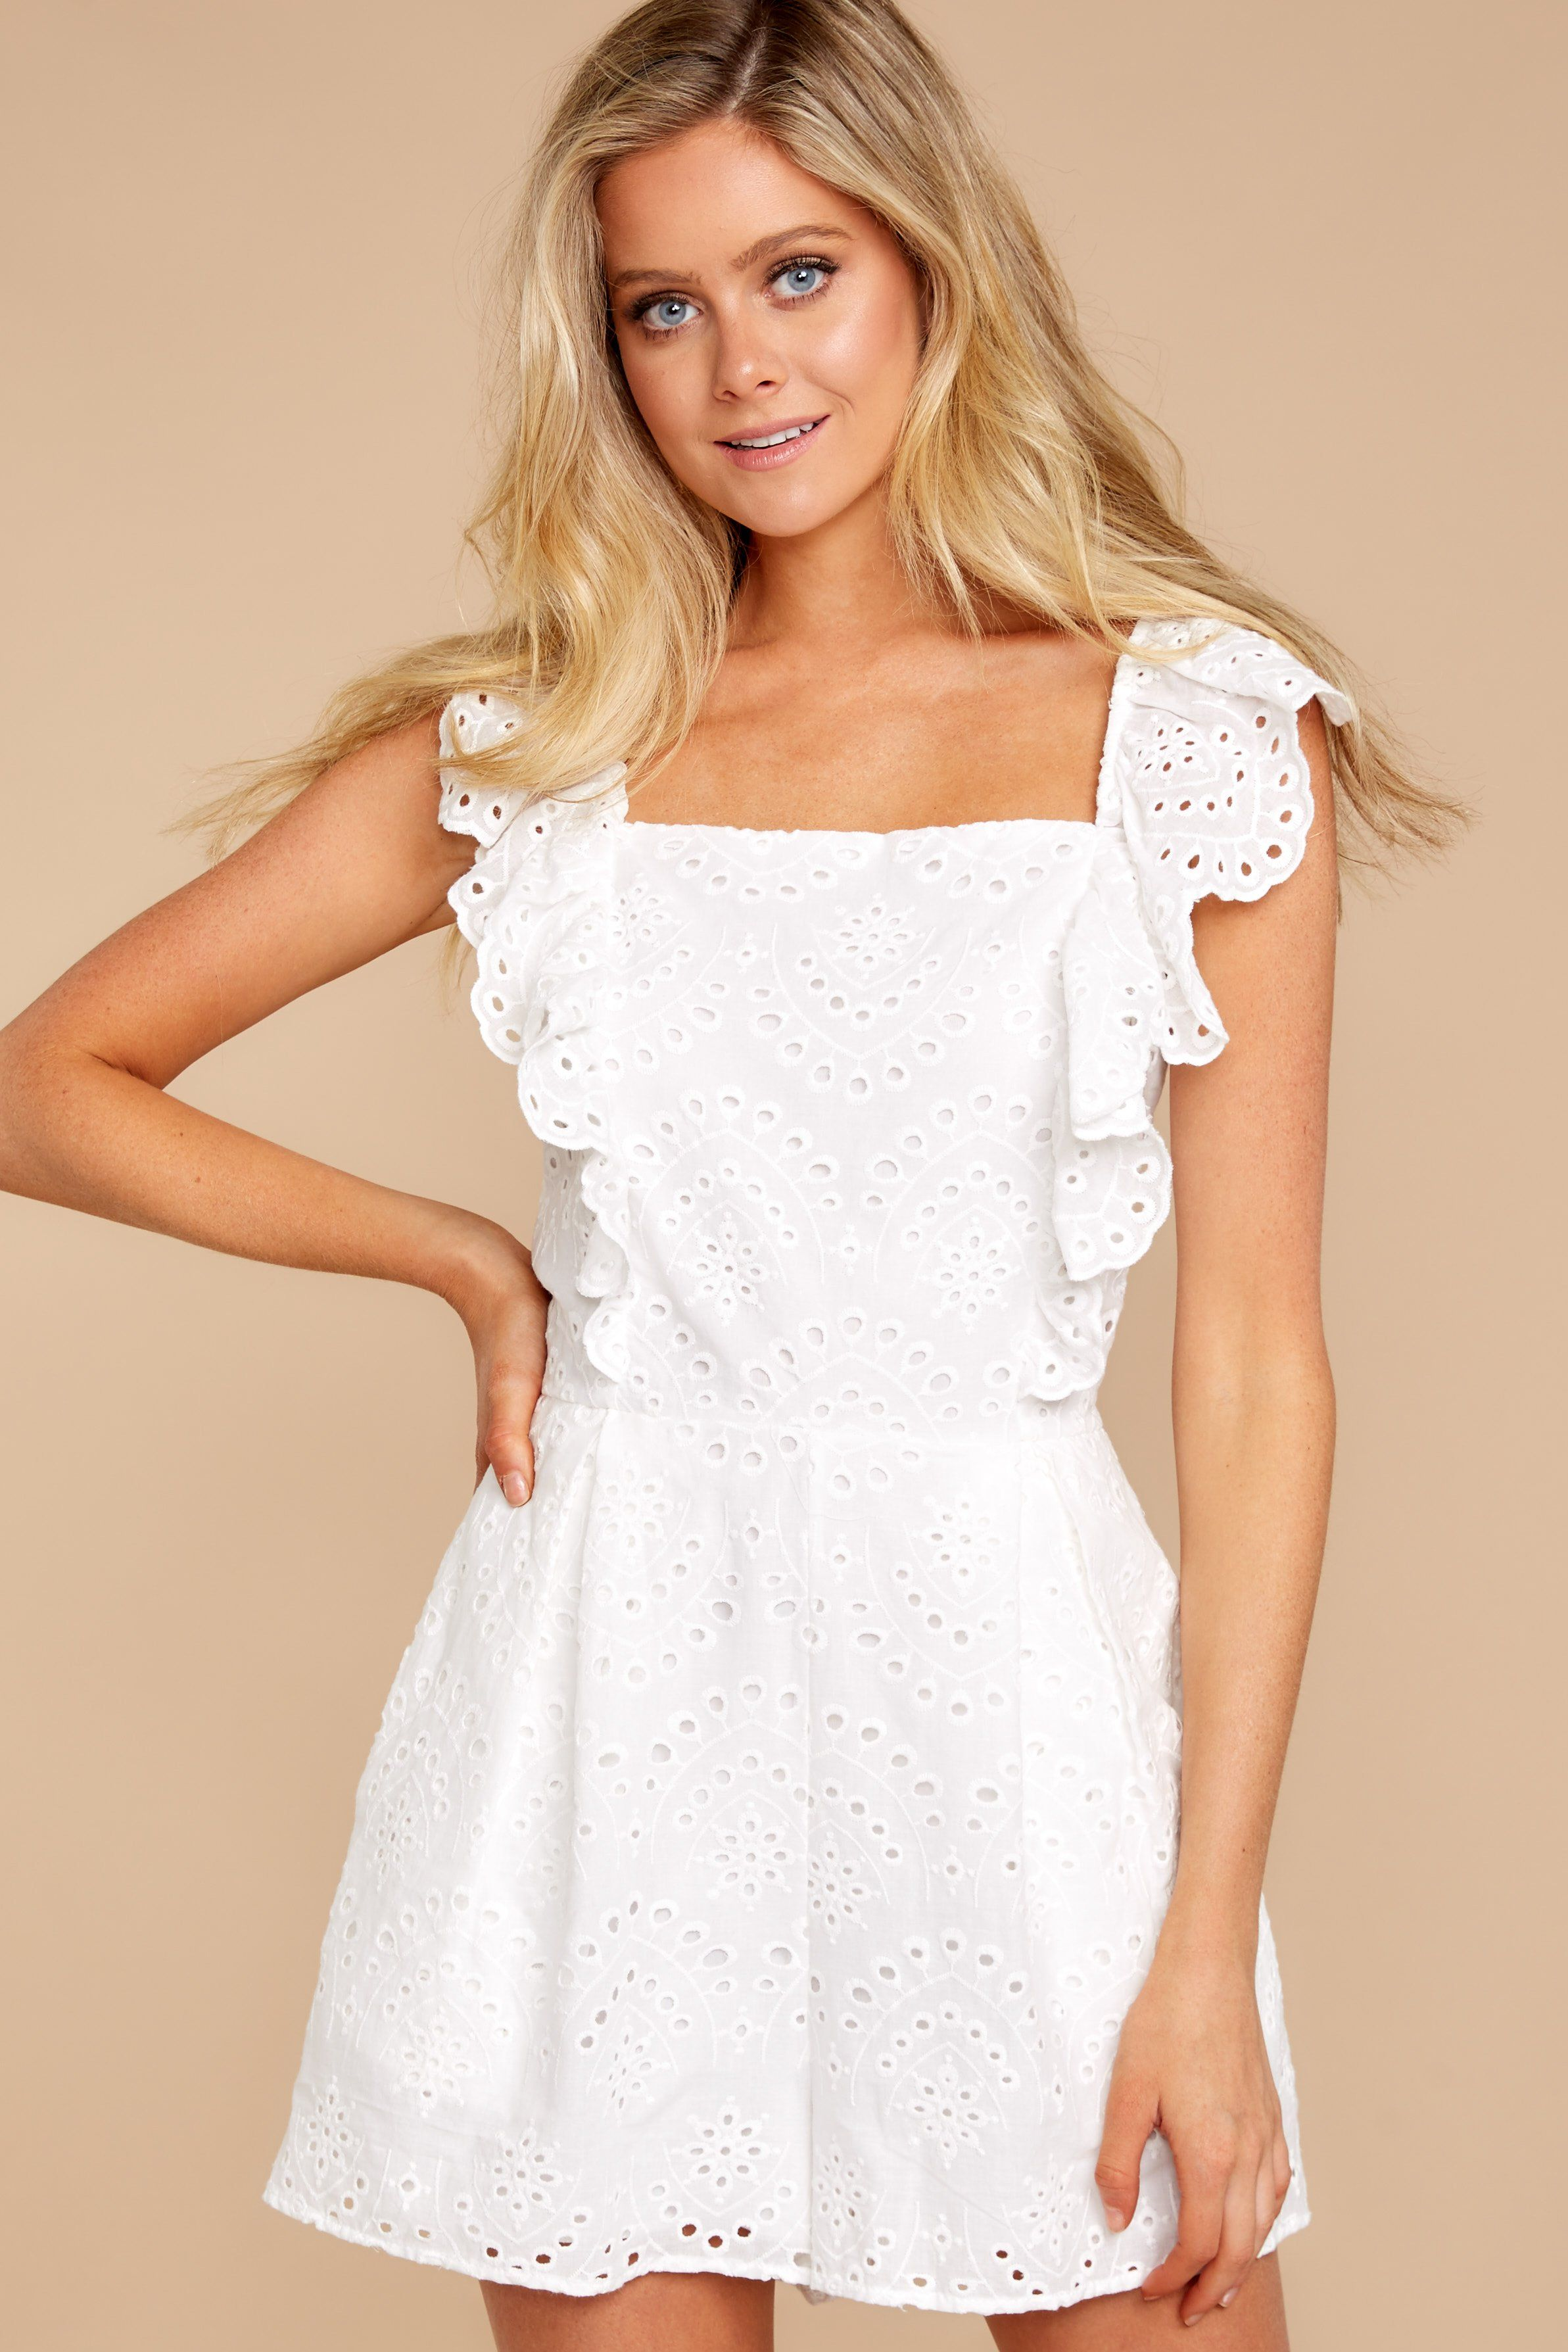 Sweetest Touch White Eyelet Romper